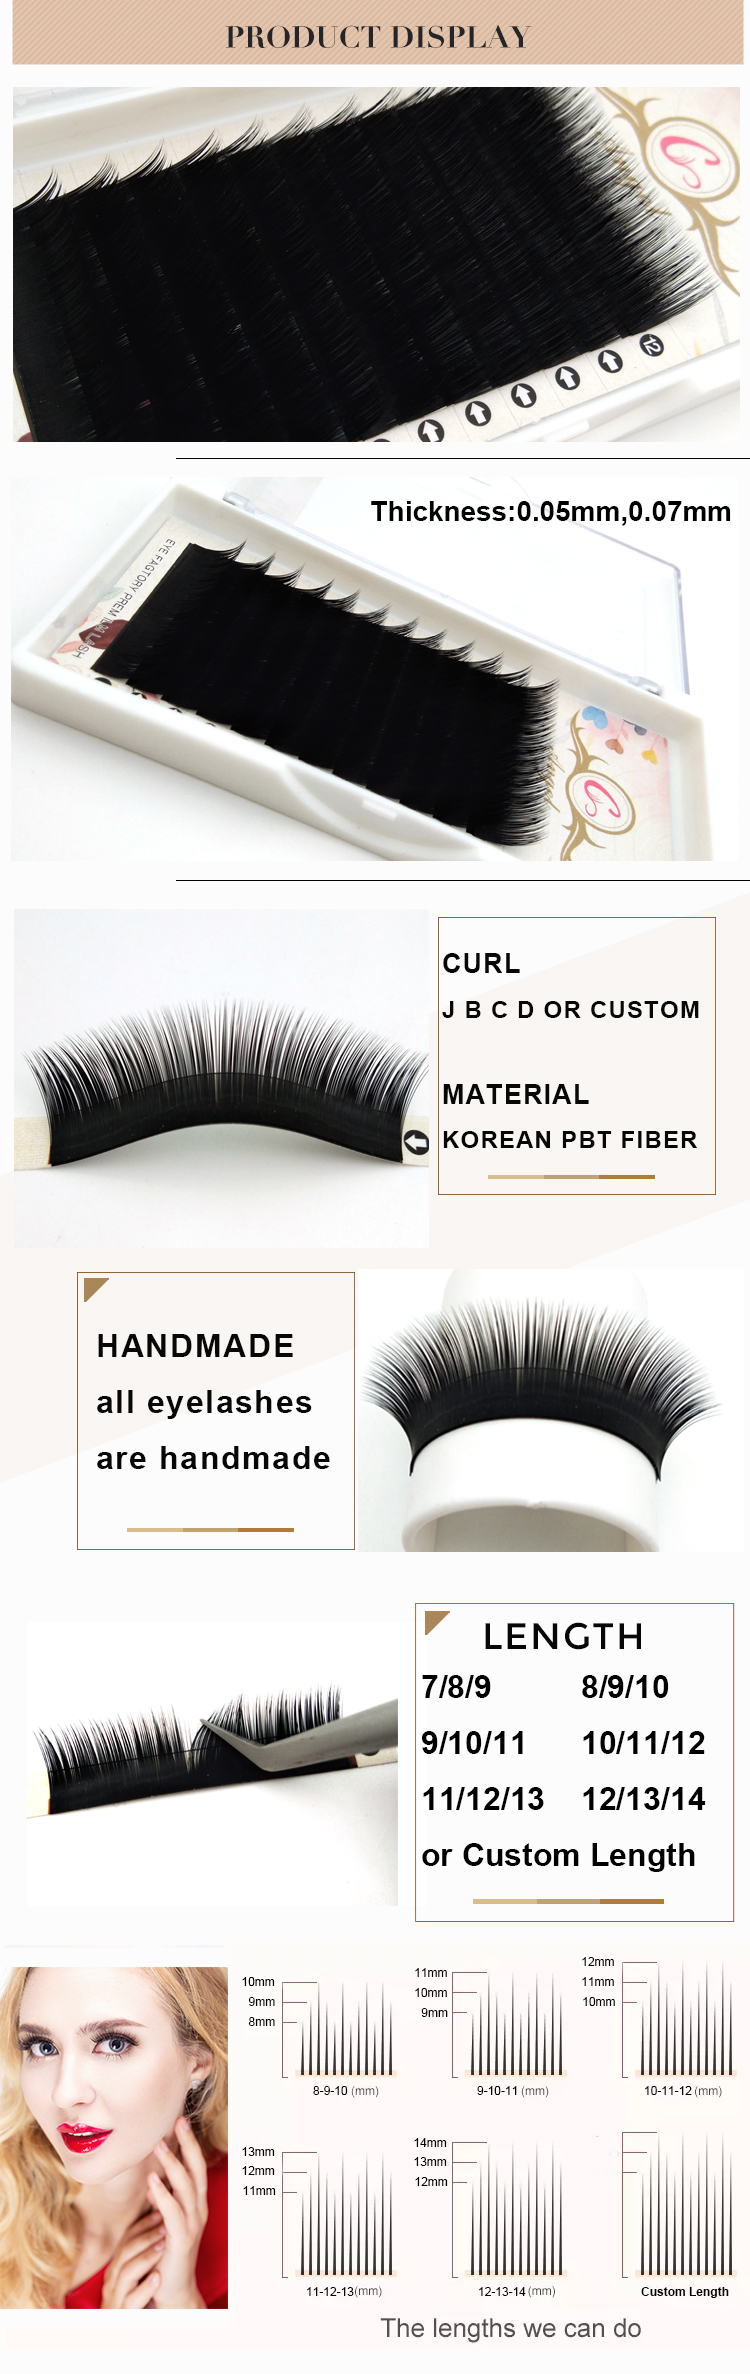 Ellipse Flat Lashes Extension ผ้าไหม Lashes Eyelash Extension แคชเมียร์ Eyelash Extension Easy แฟน Volume Lashes